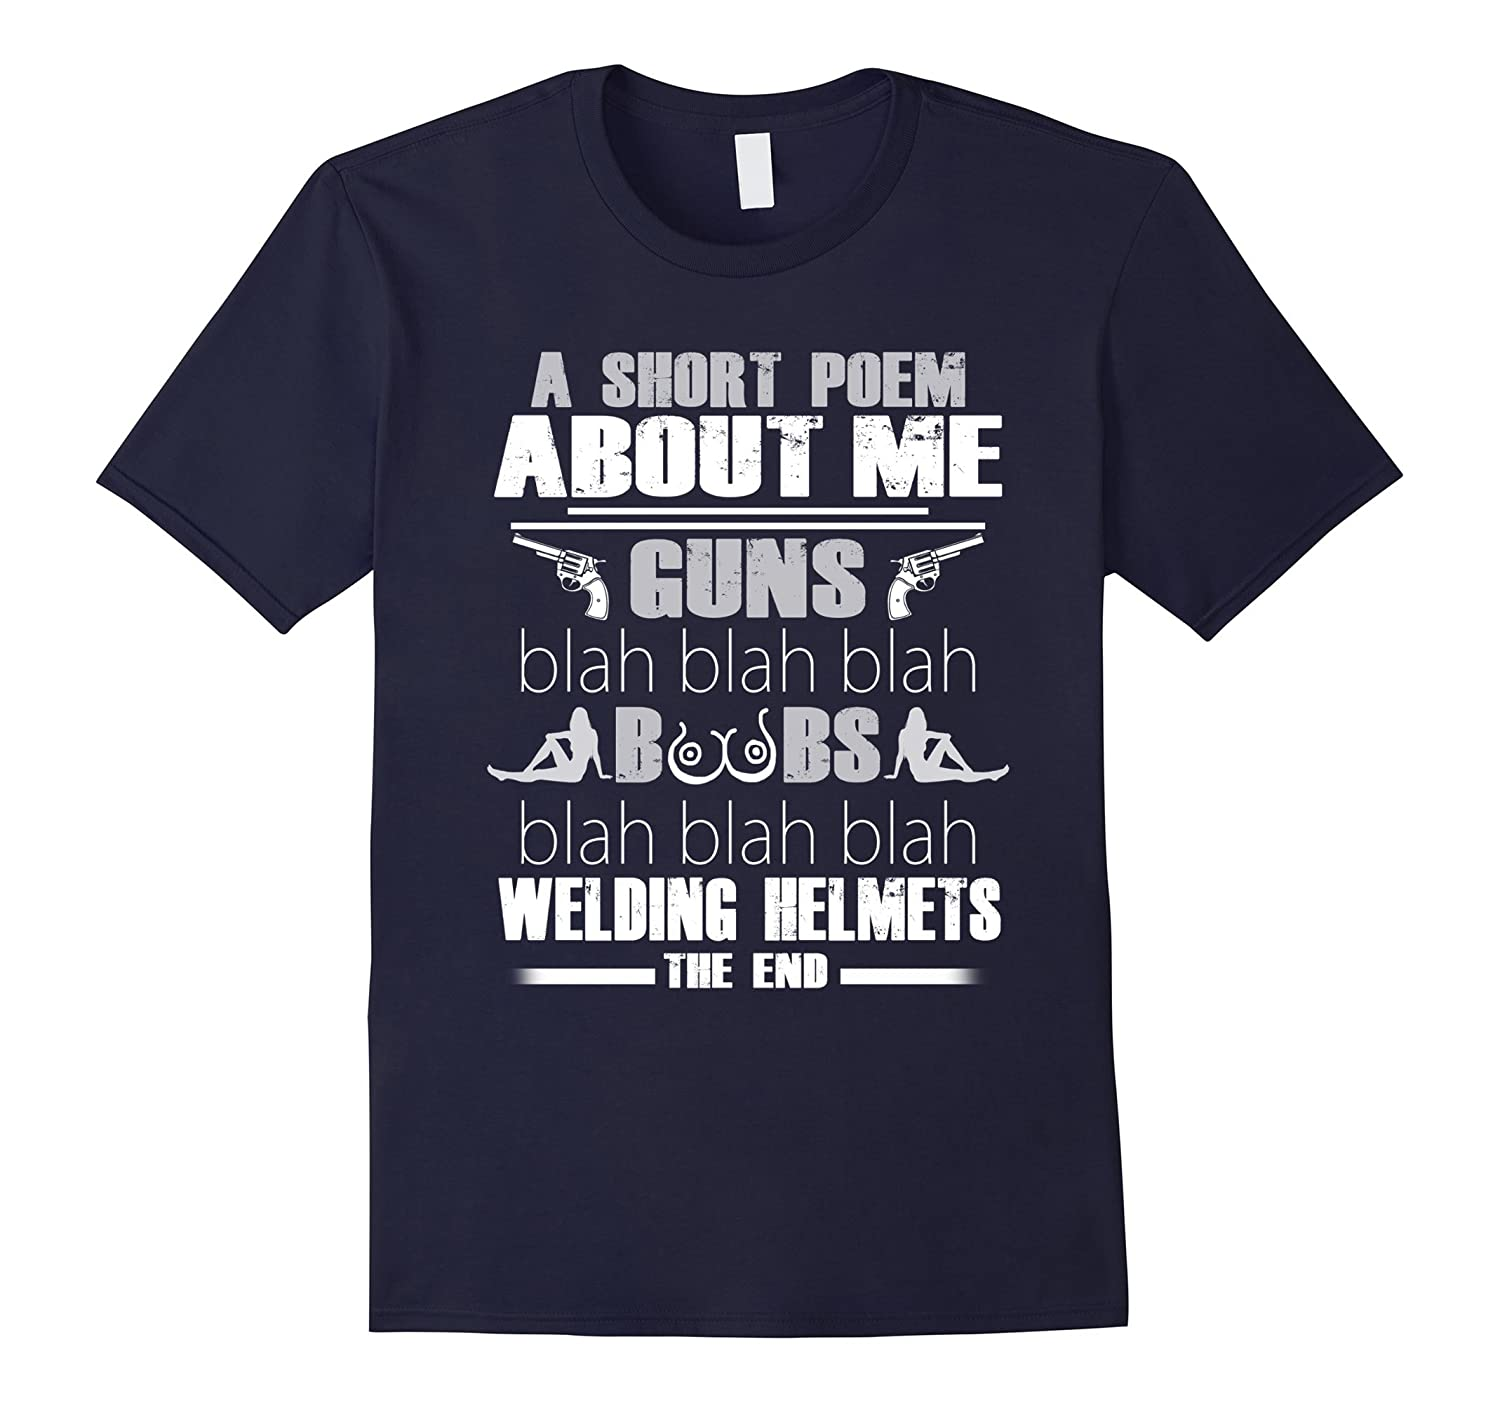 A short poem about me guns blah blah blah welder tshirt-TJ